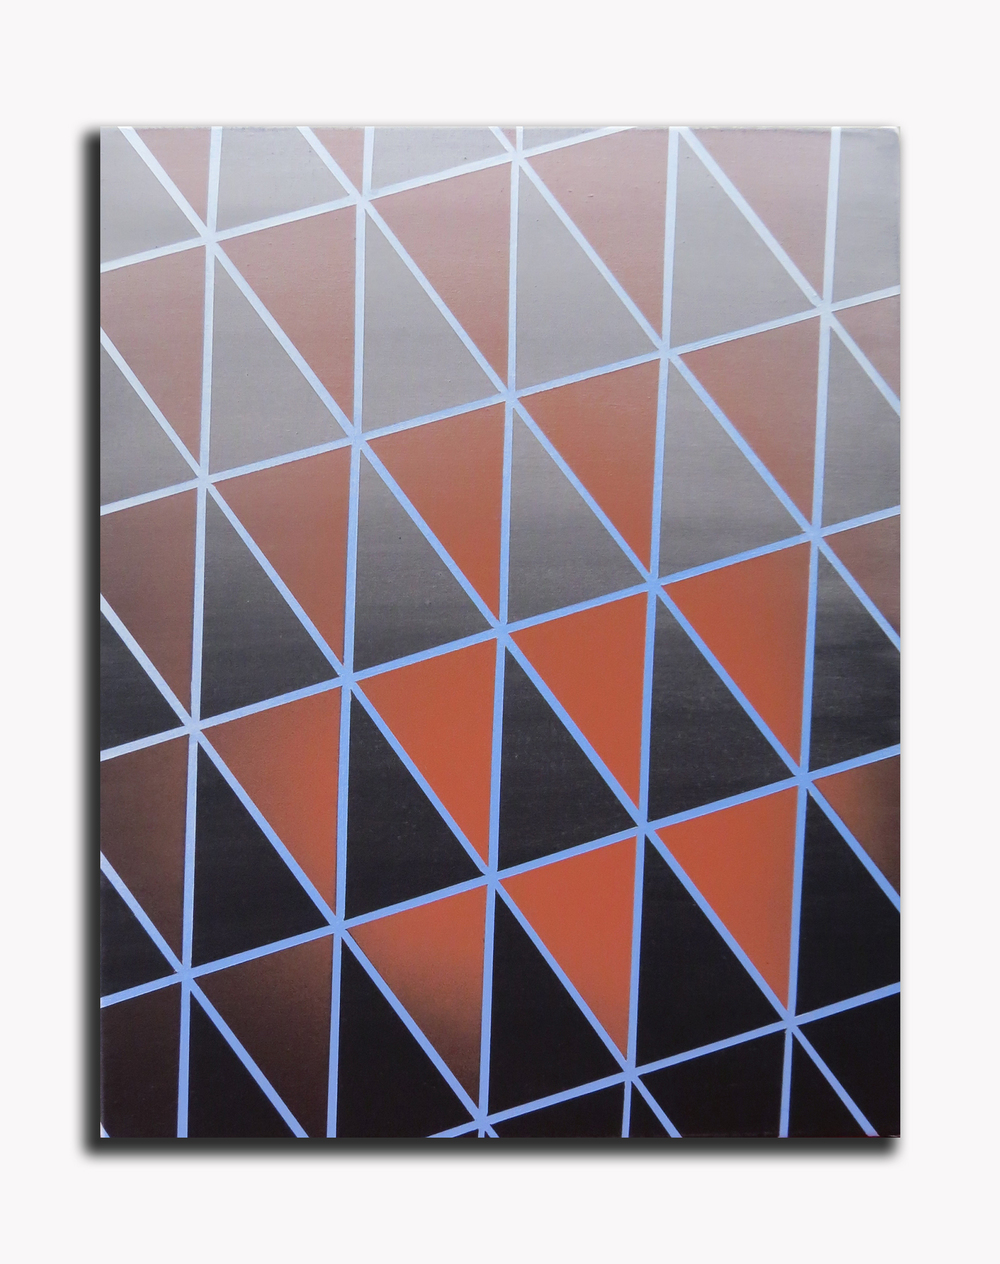 Oscillate #1, 40 x 50 cm, Acrylic on canvas 2016.jpg